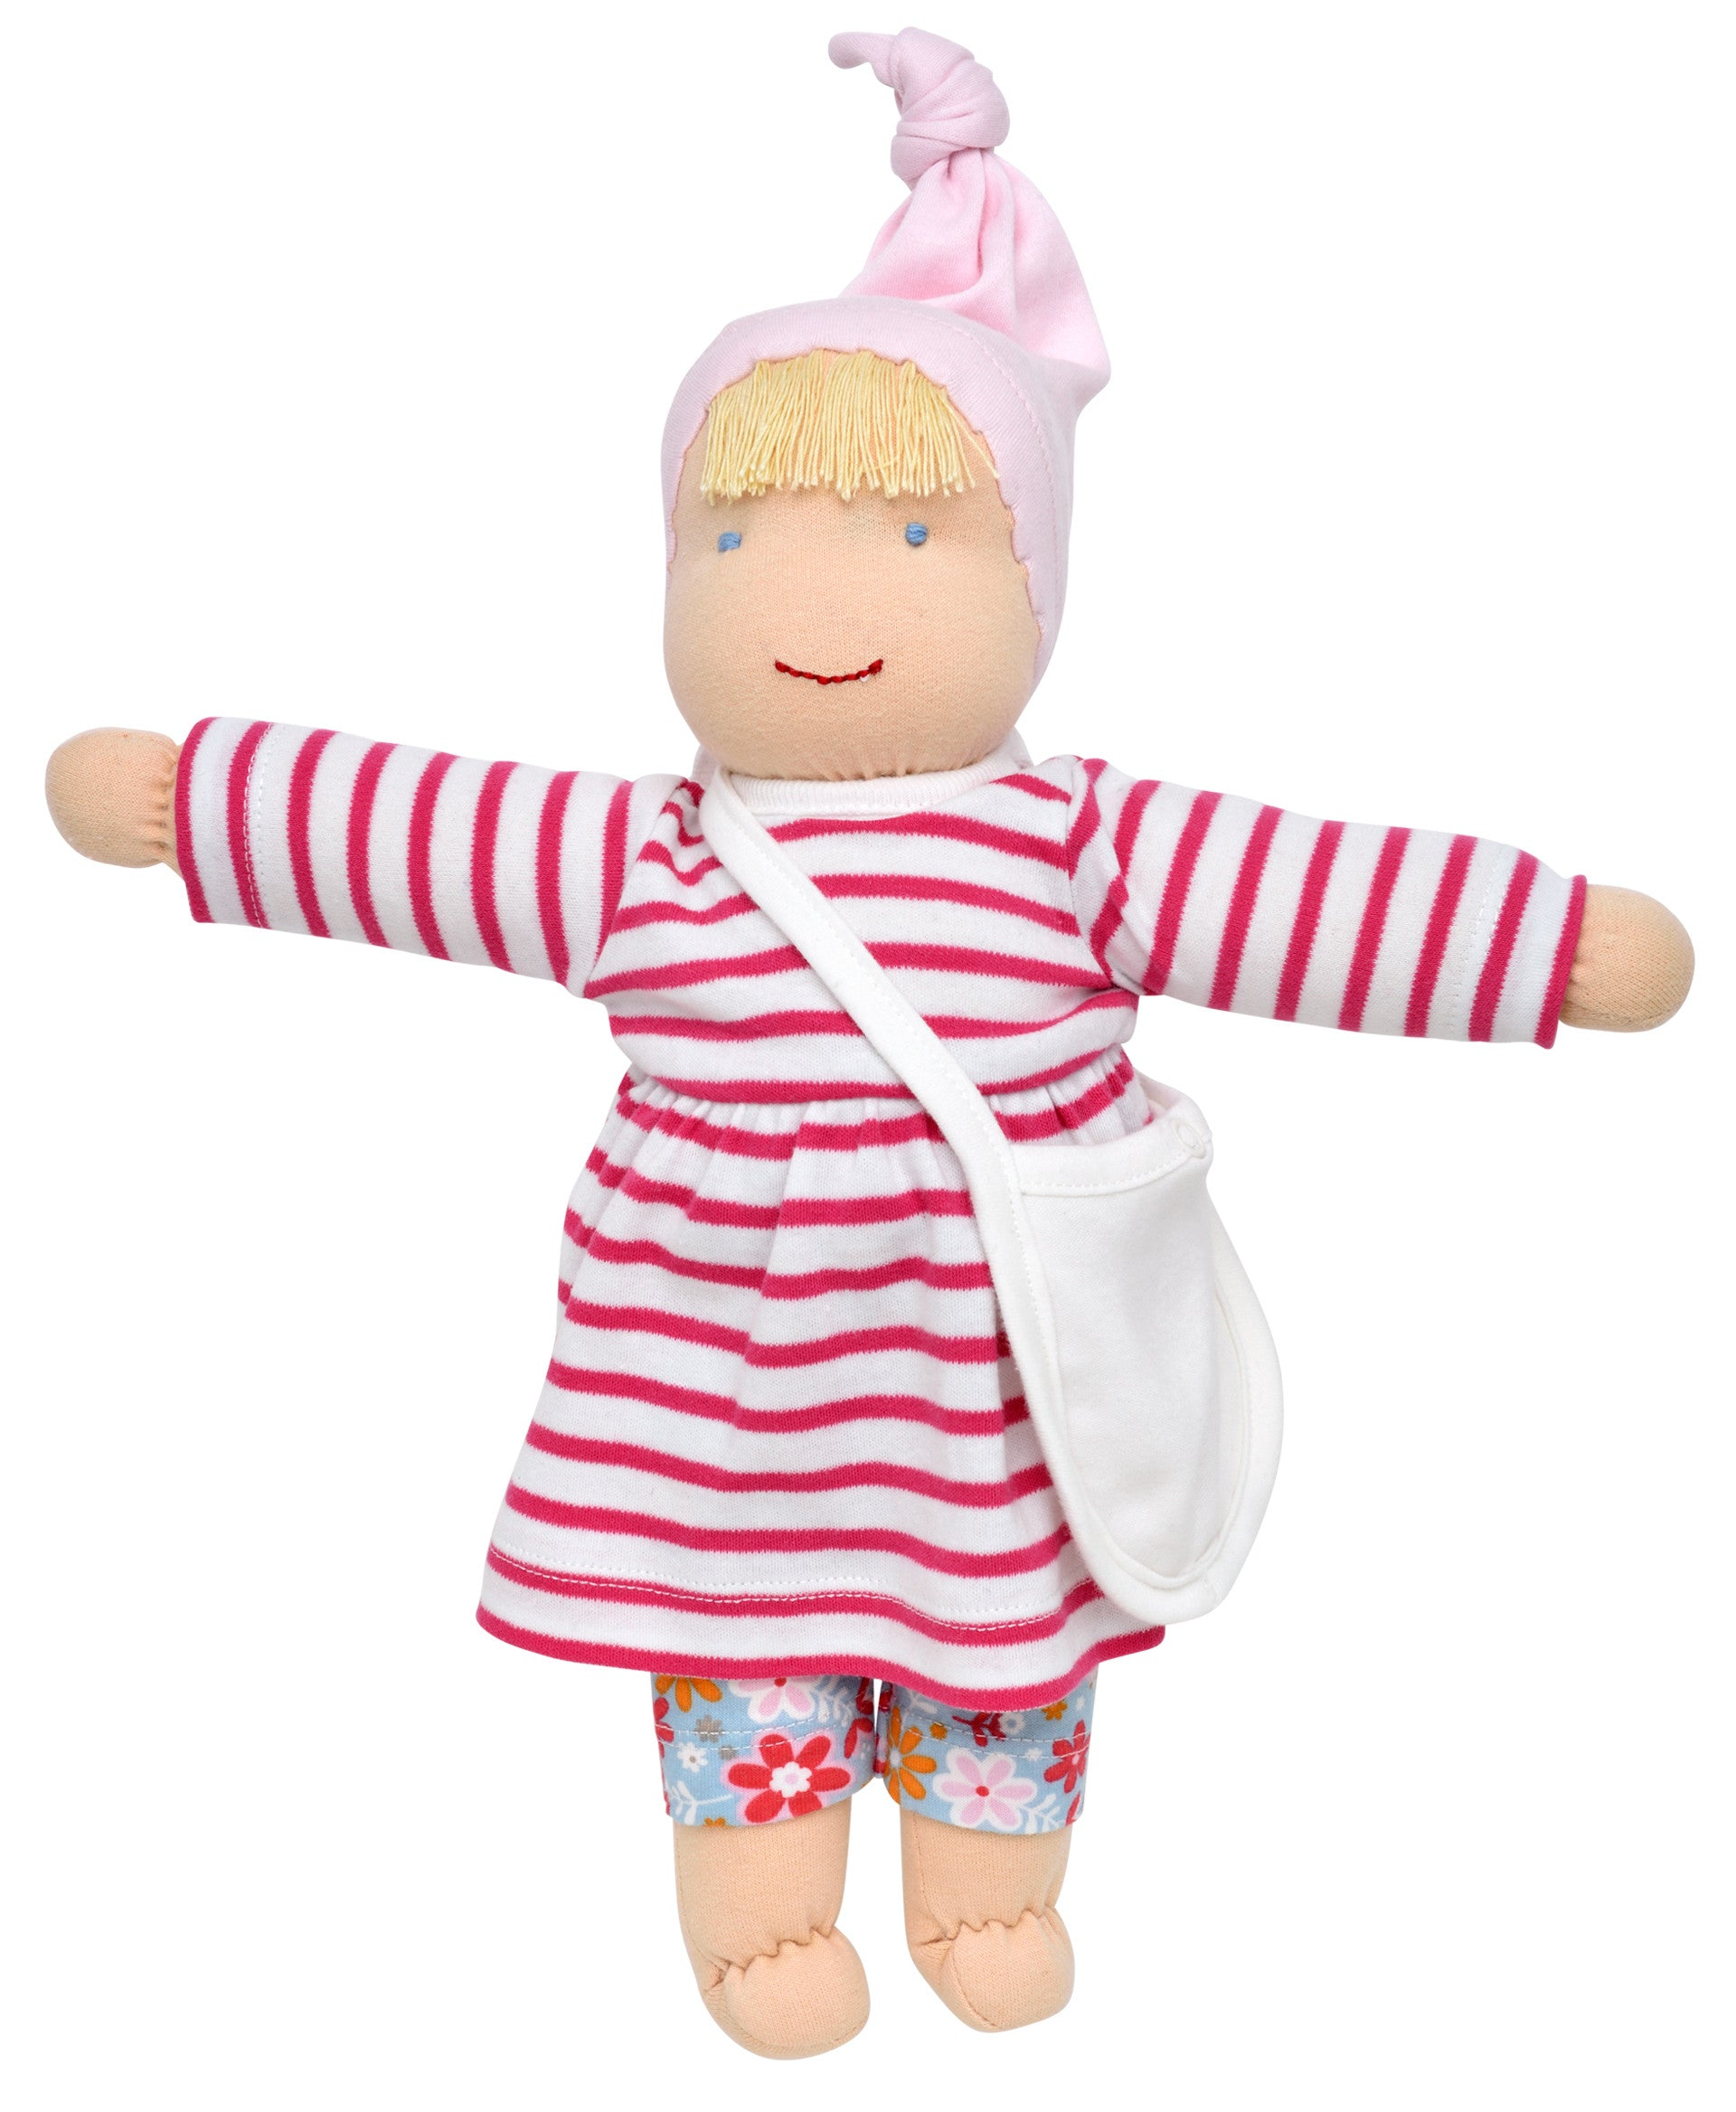 organic-cotton-baby-kids-toddler-dress-up-doll-hazel